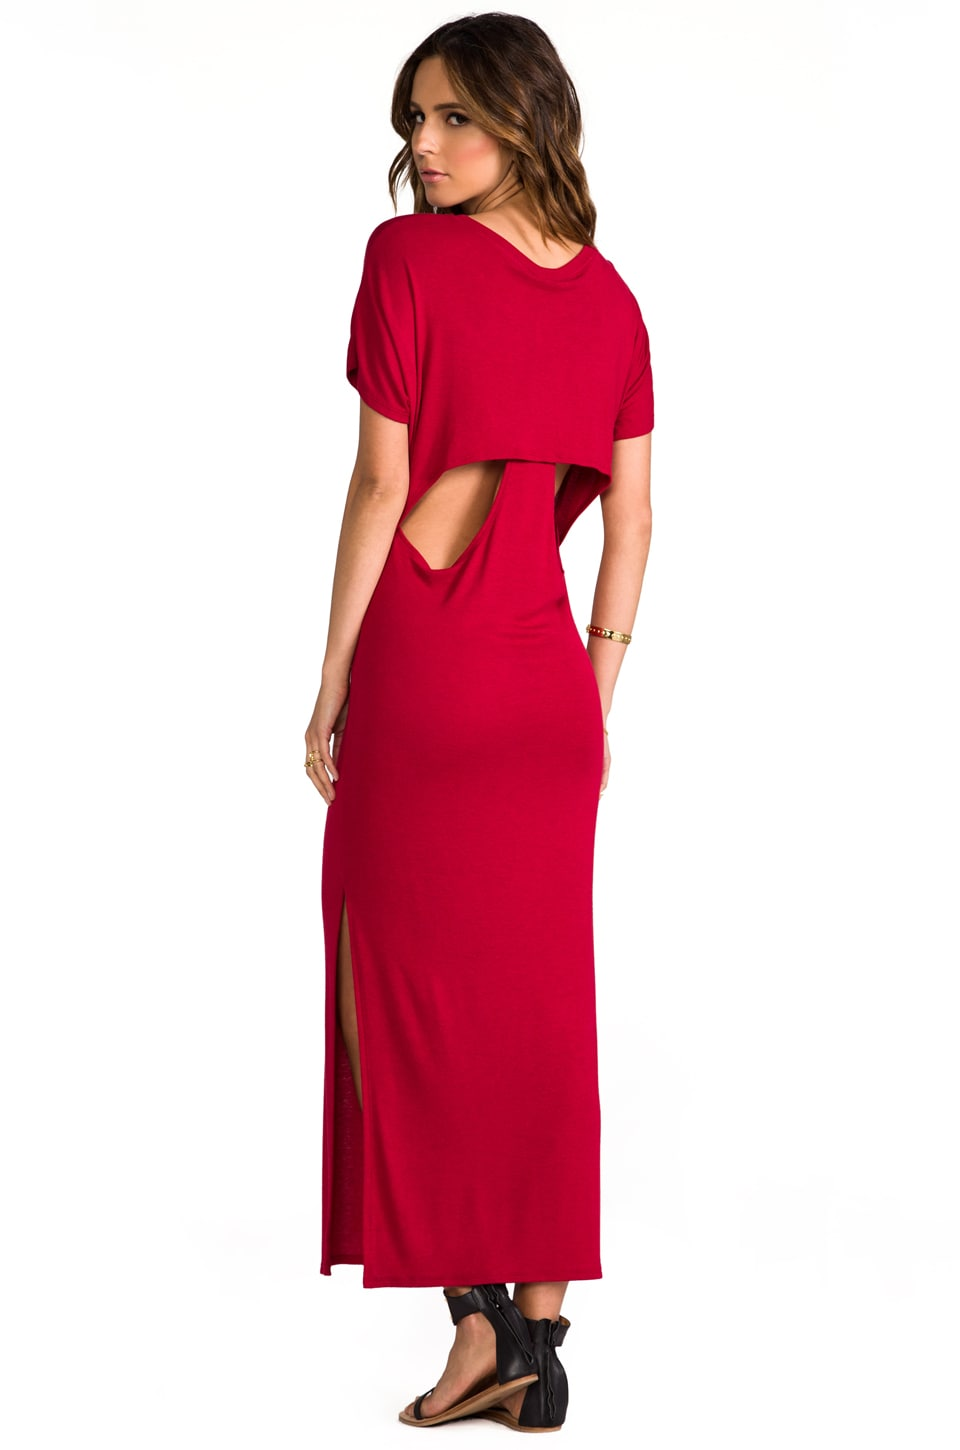 Heather Hidden Racer Maxi Dress in Heather Capri